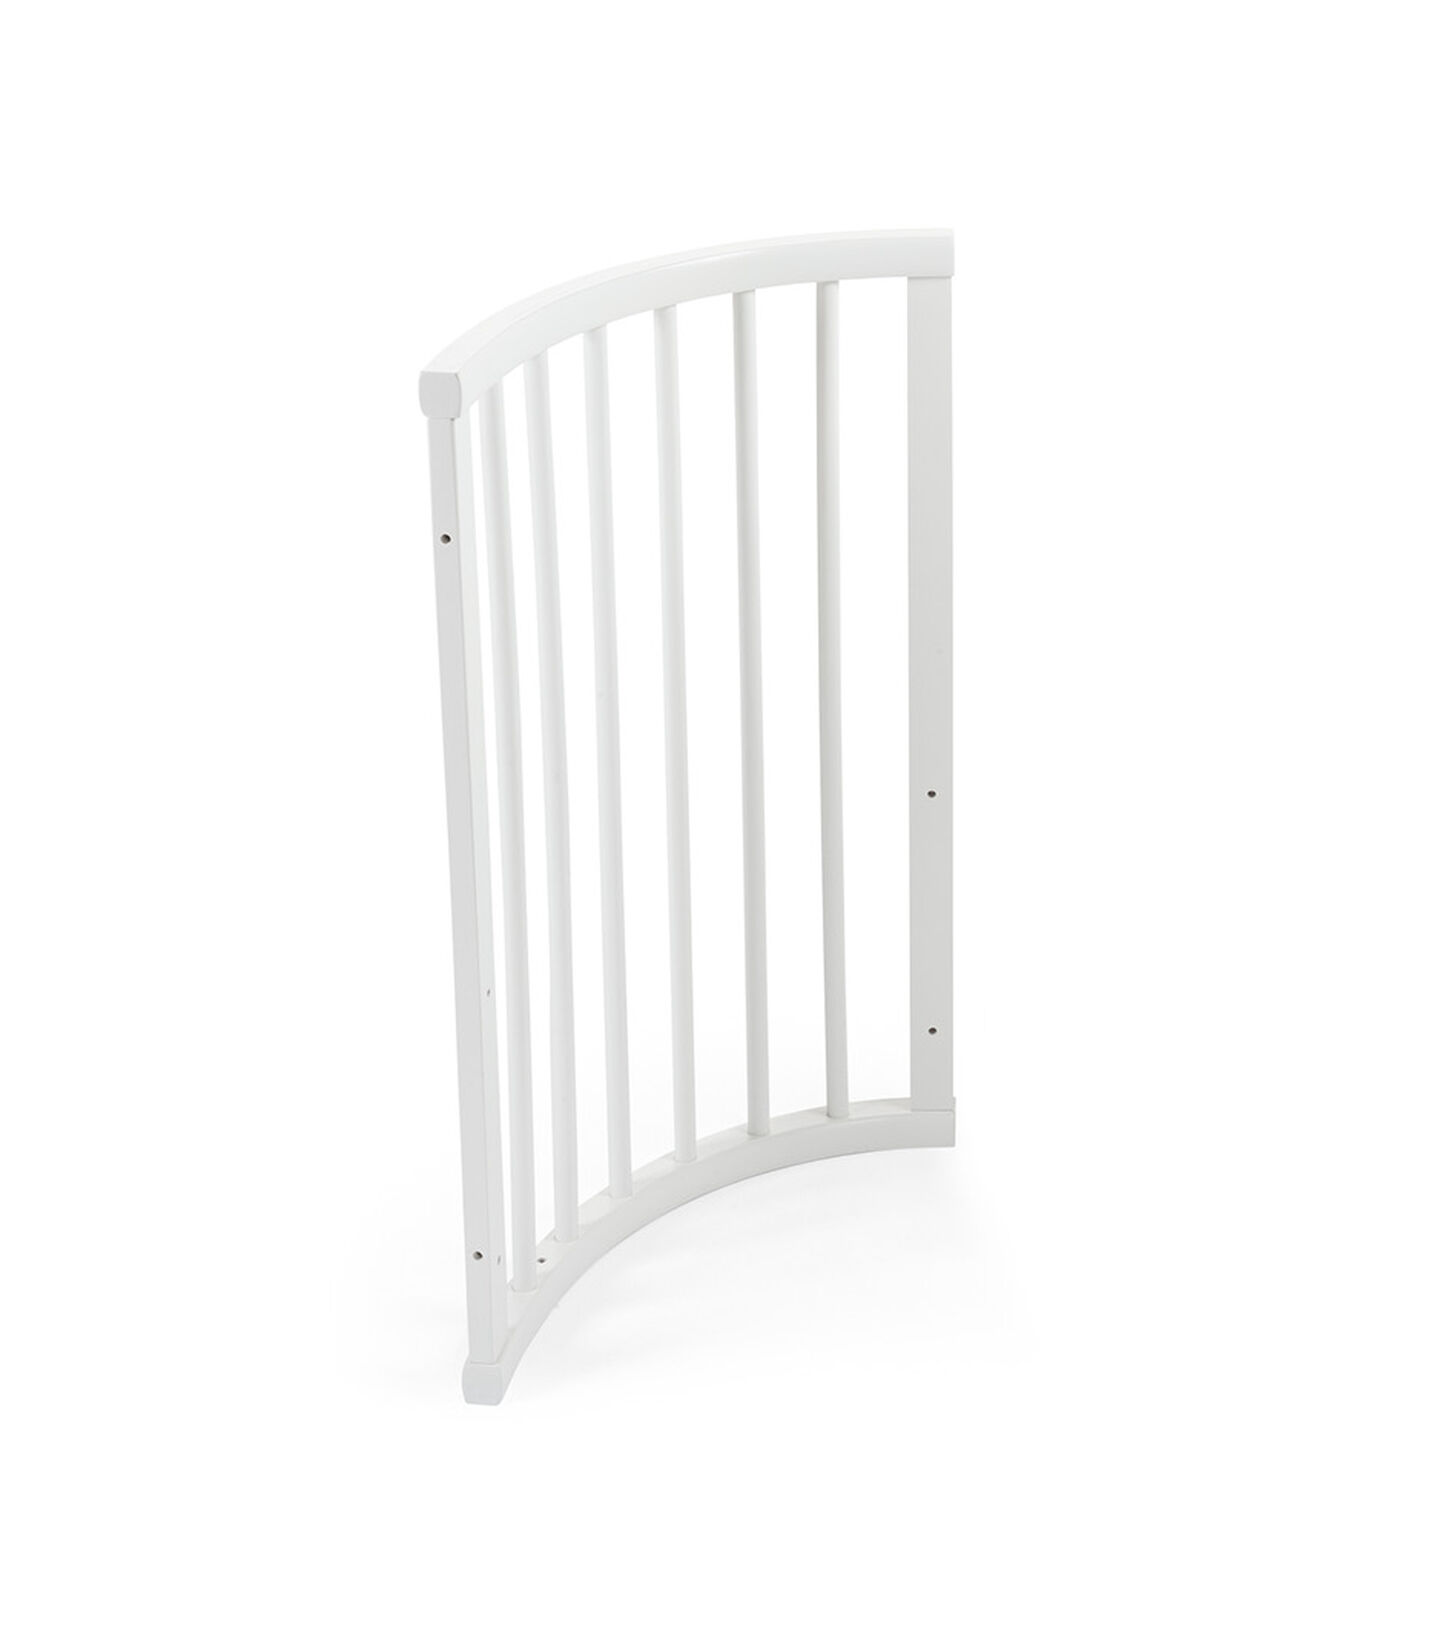 Stokke® Sleepi™ End section L Blanco, Blanco, mainview view 2